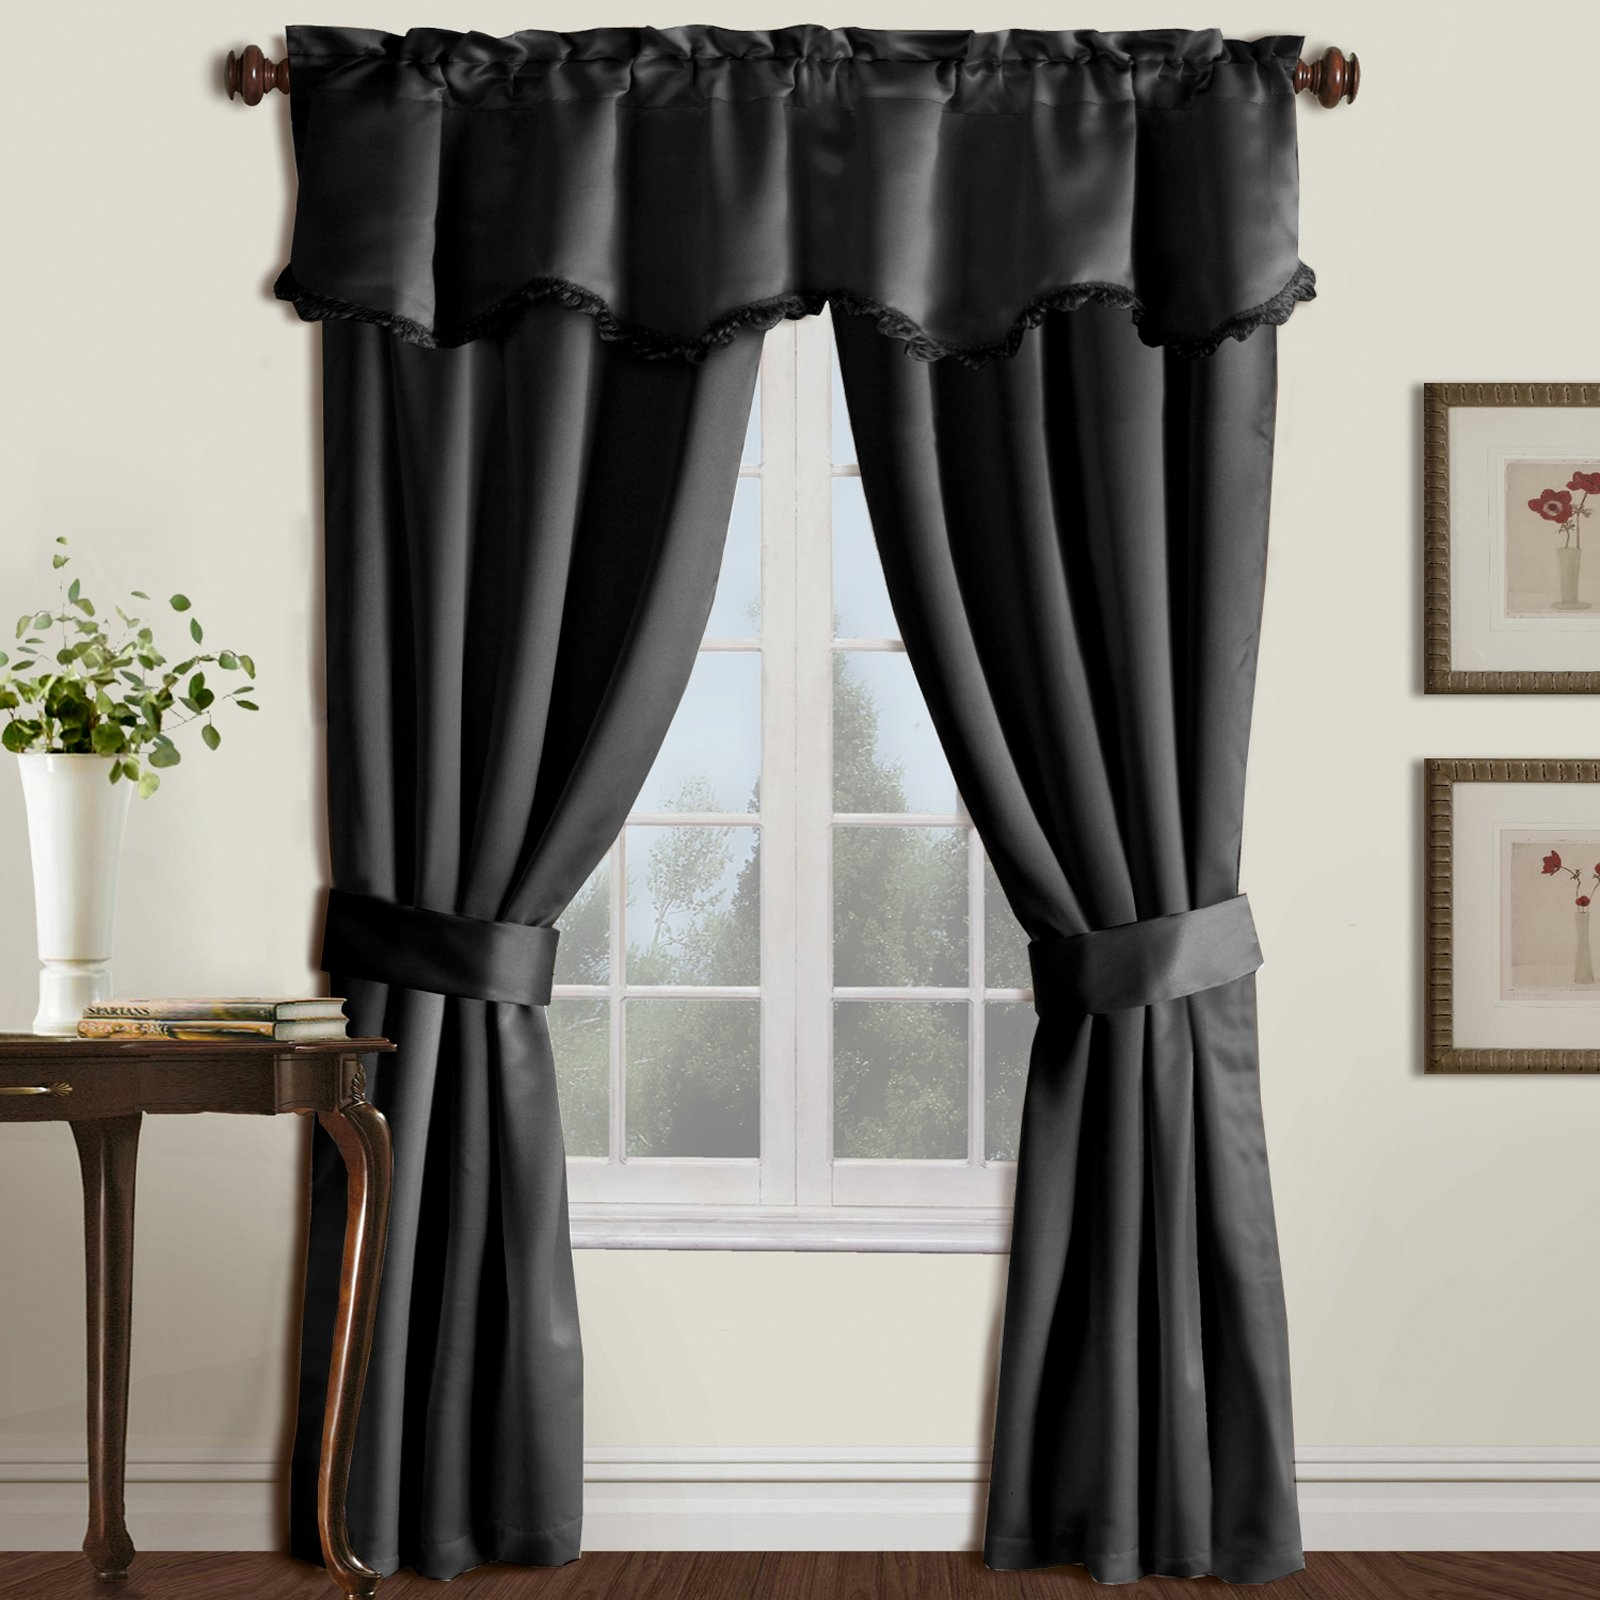 Walmart Sheer Curtains 63 Inches Long